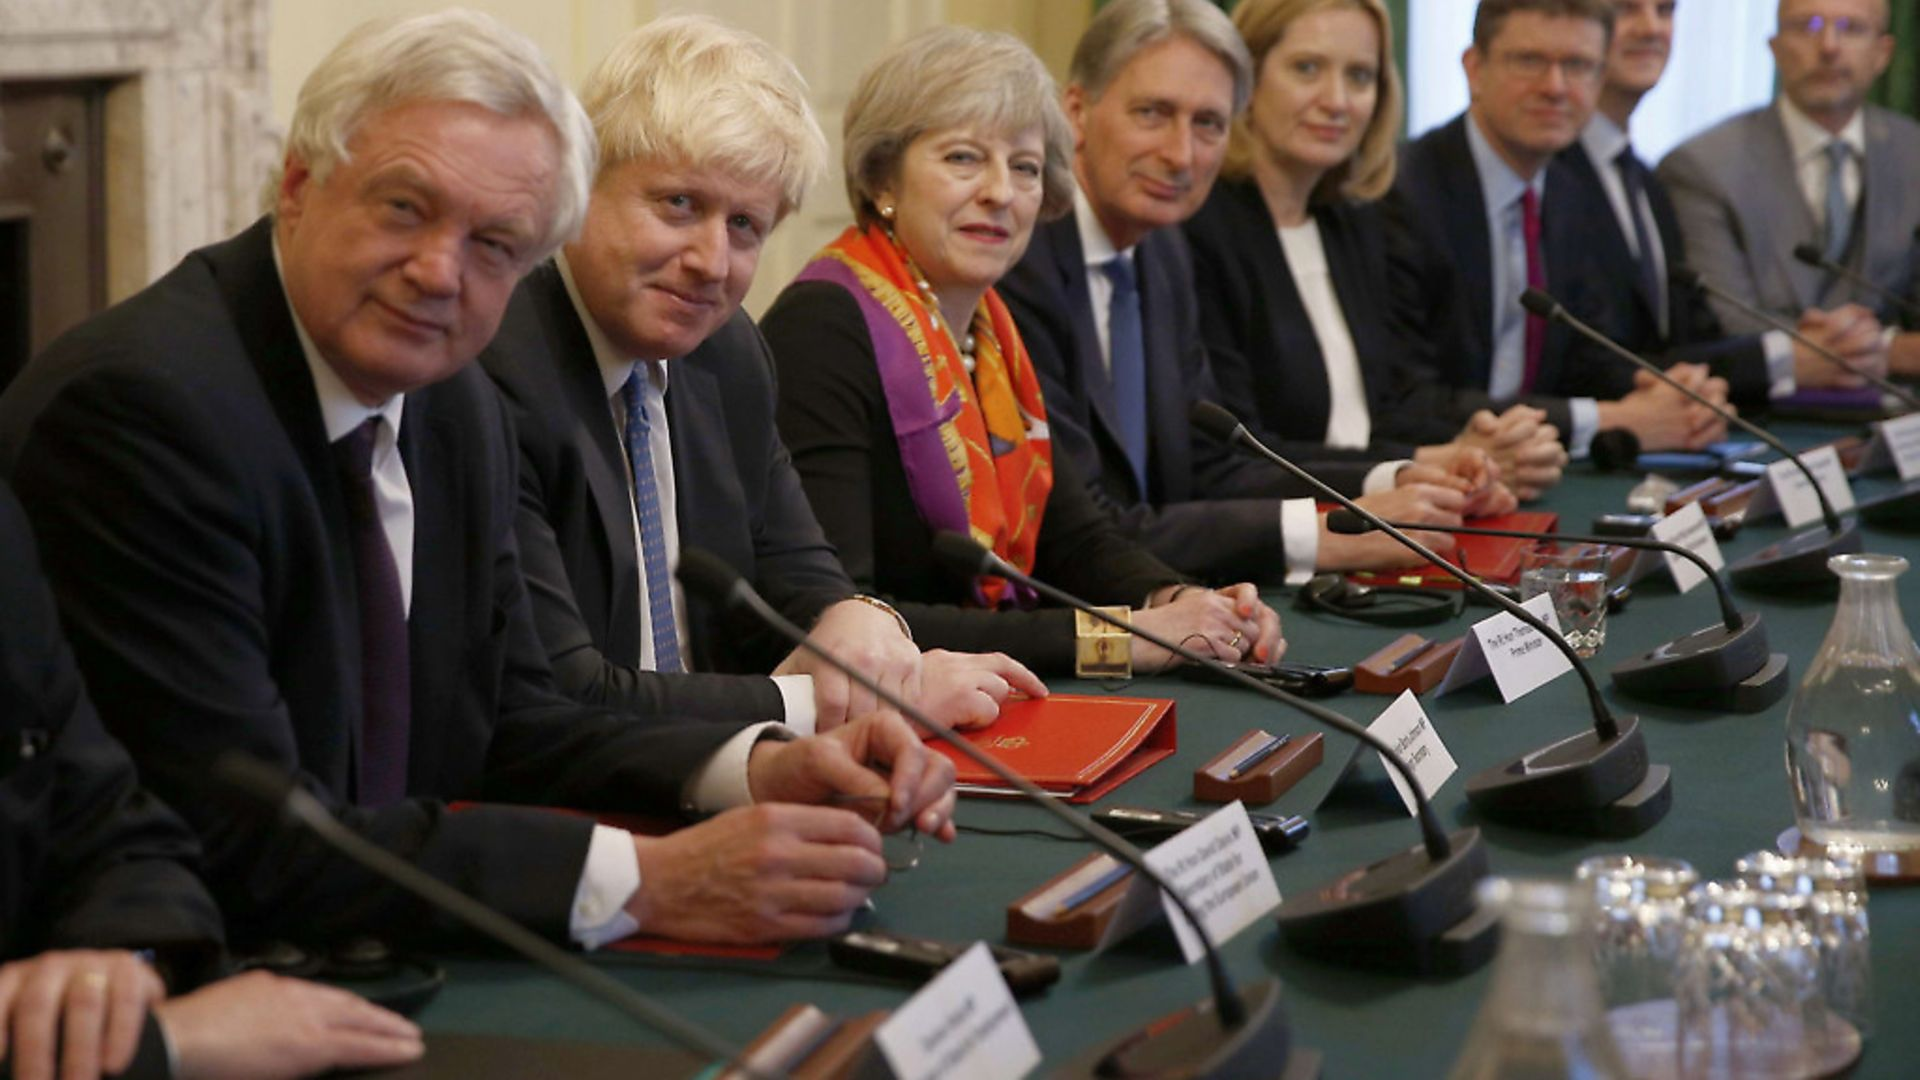 British Prime Minister Theresa May with members of her cabinet (Photo: PETER NICHOLLS/AFP/Getty Images) - Credit: AFP/Getty Images